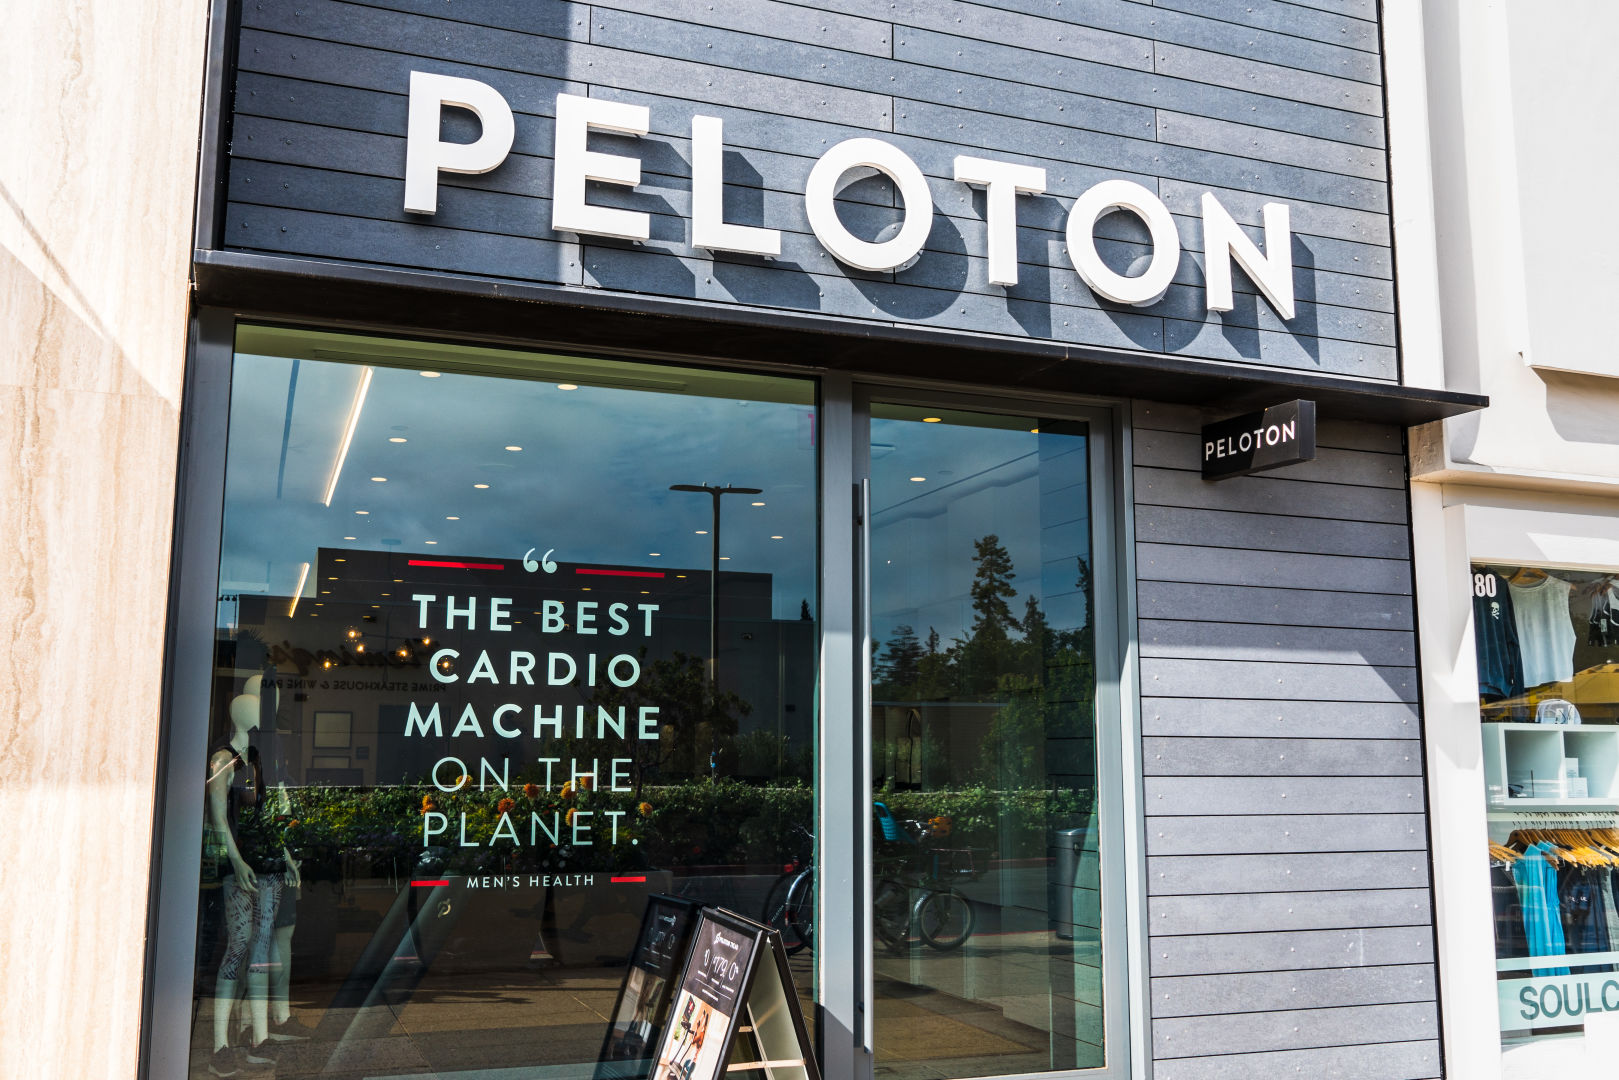 Peloton's cringeworthy new holiday ad is sending the internet into a frenzy